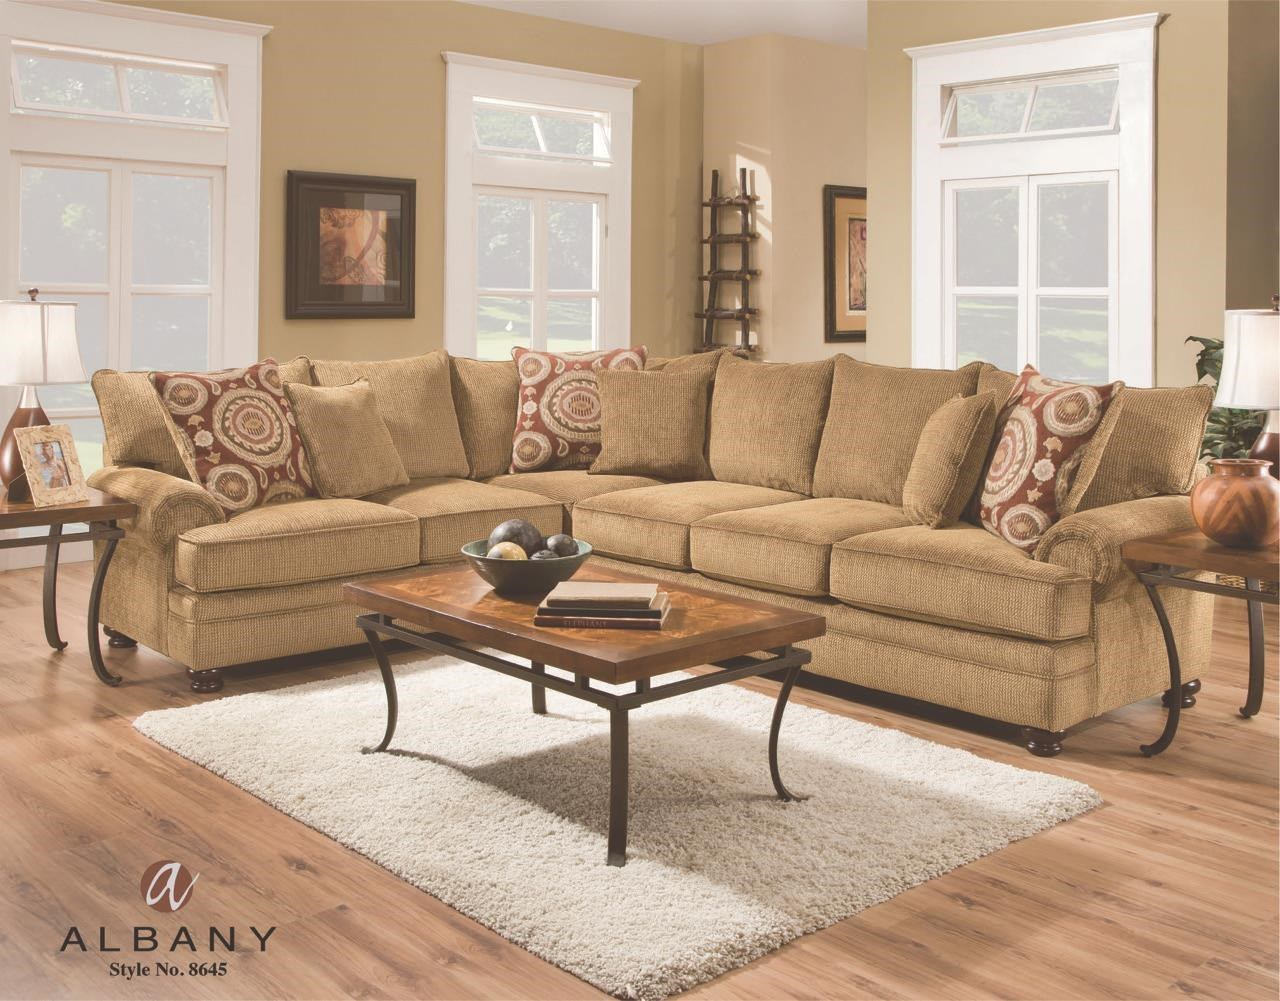 albany 8645 transitional sectional with rolled arms royal rh royalfurniture com